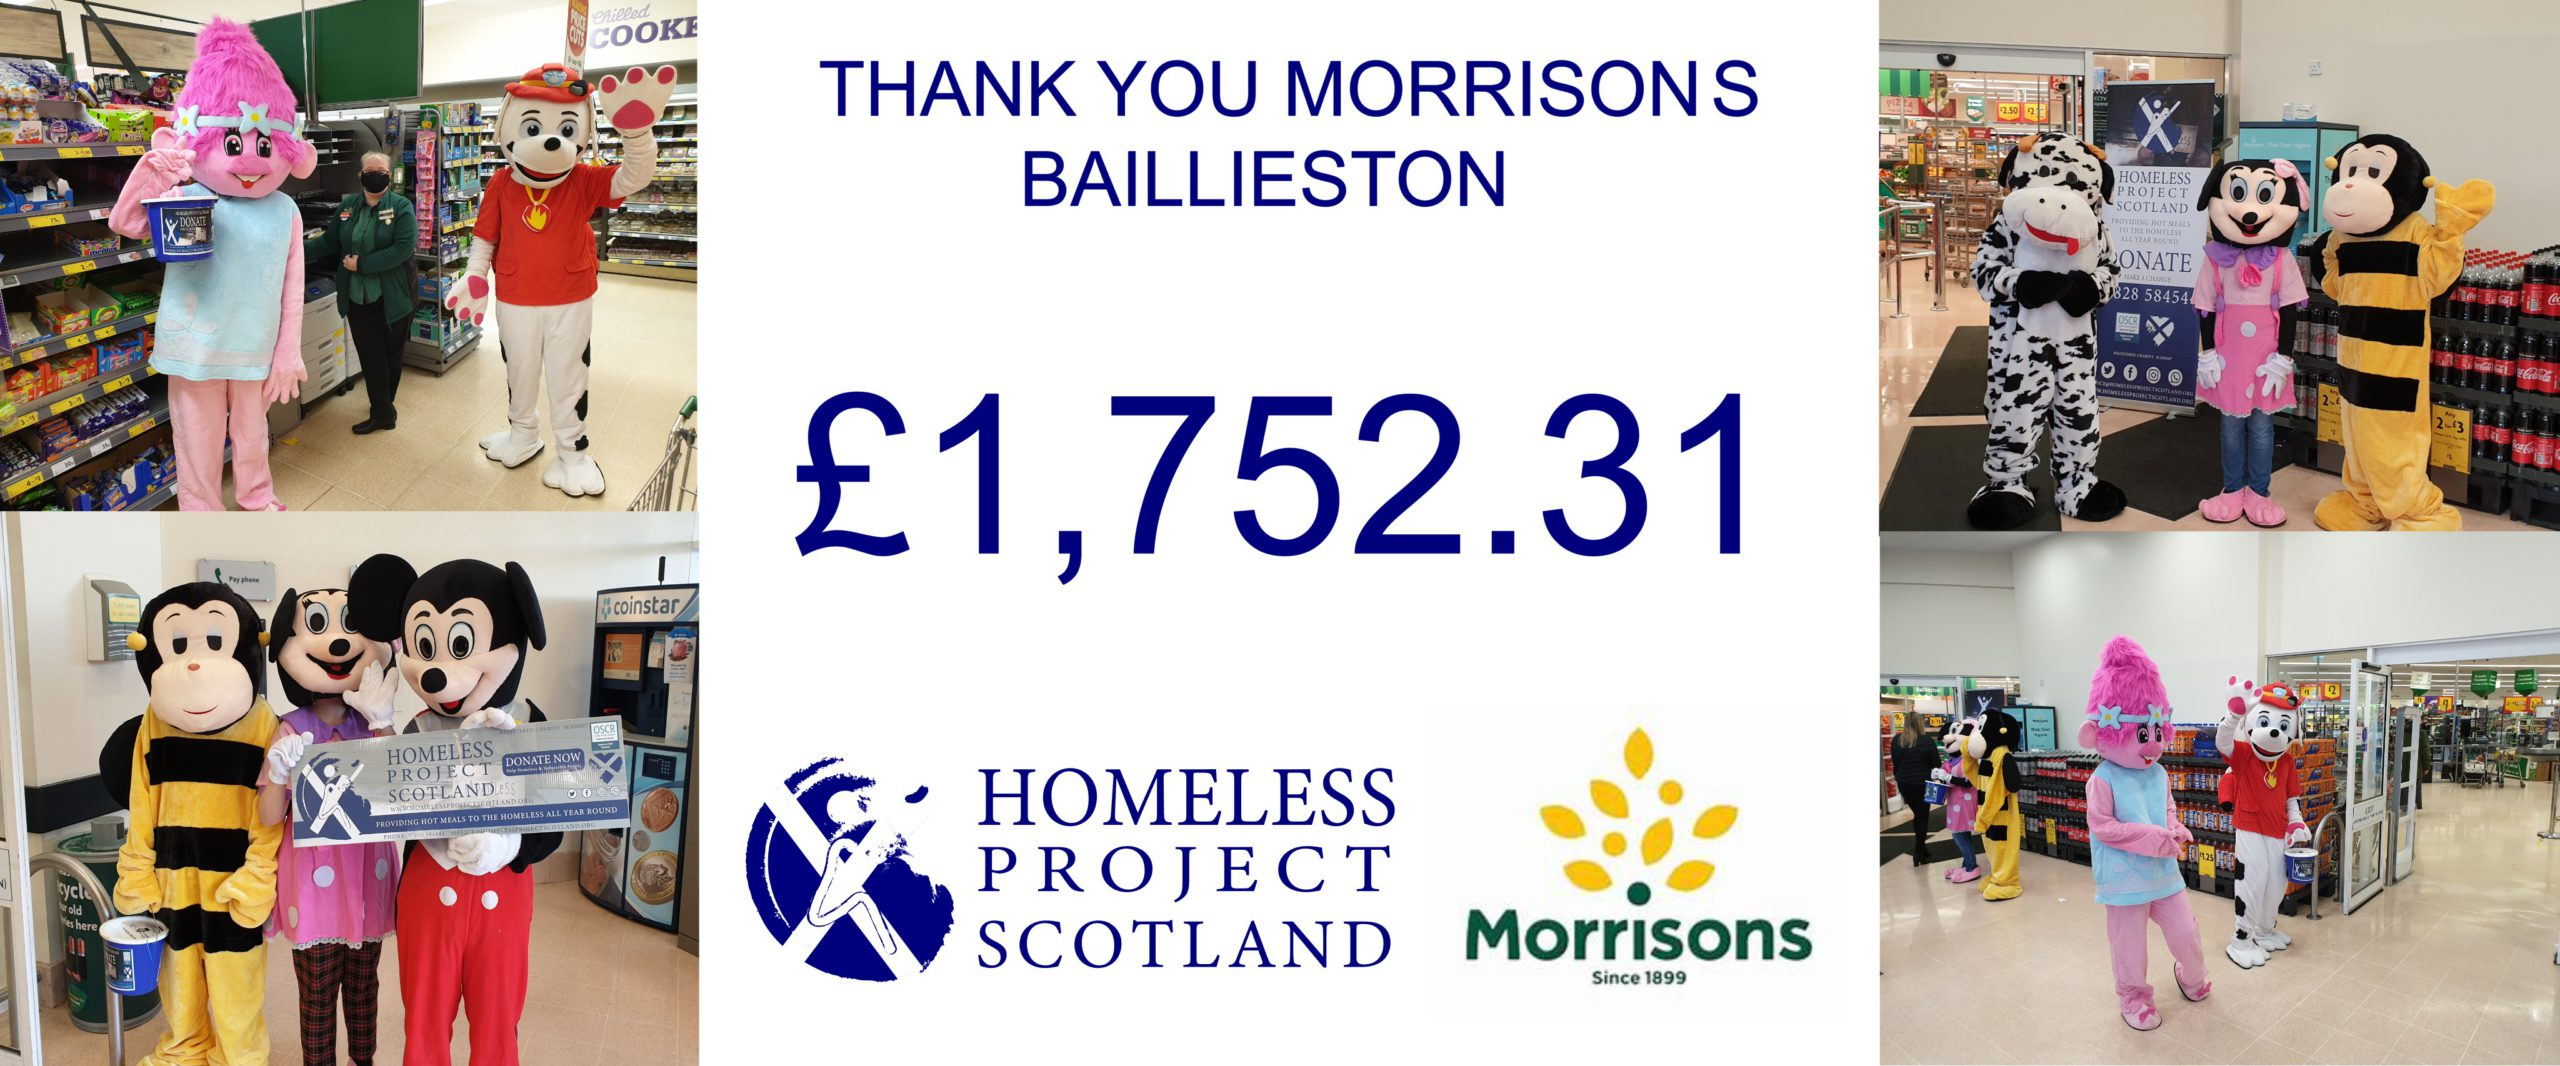 We raised an AMAZING !!!!! £1,752.31